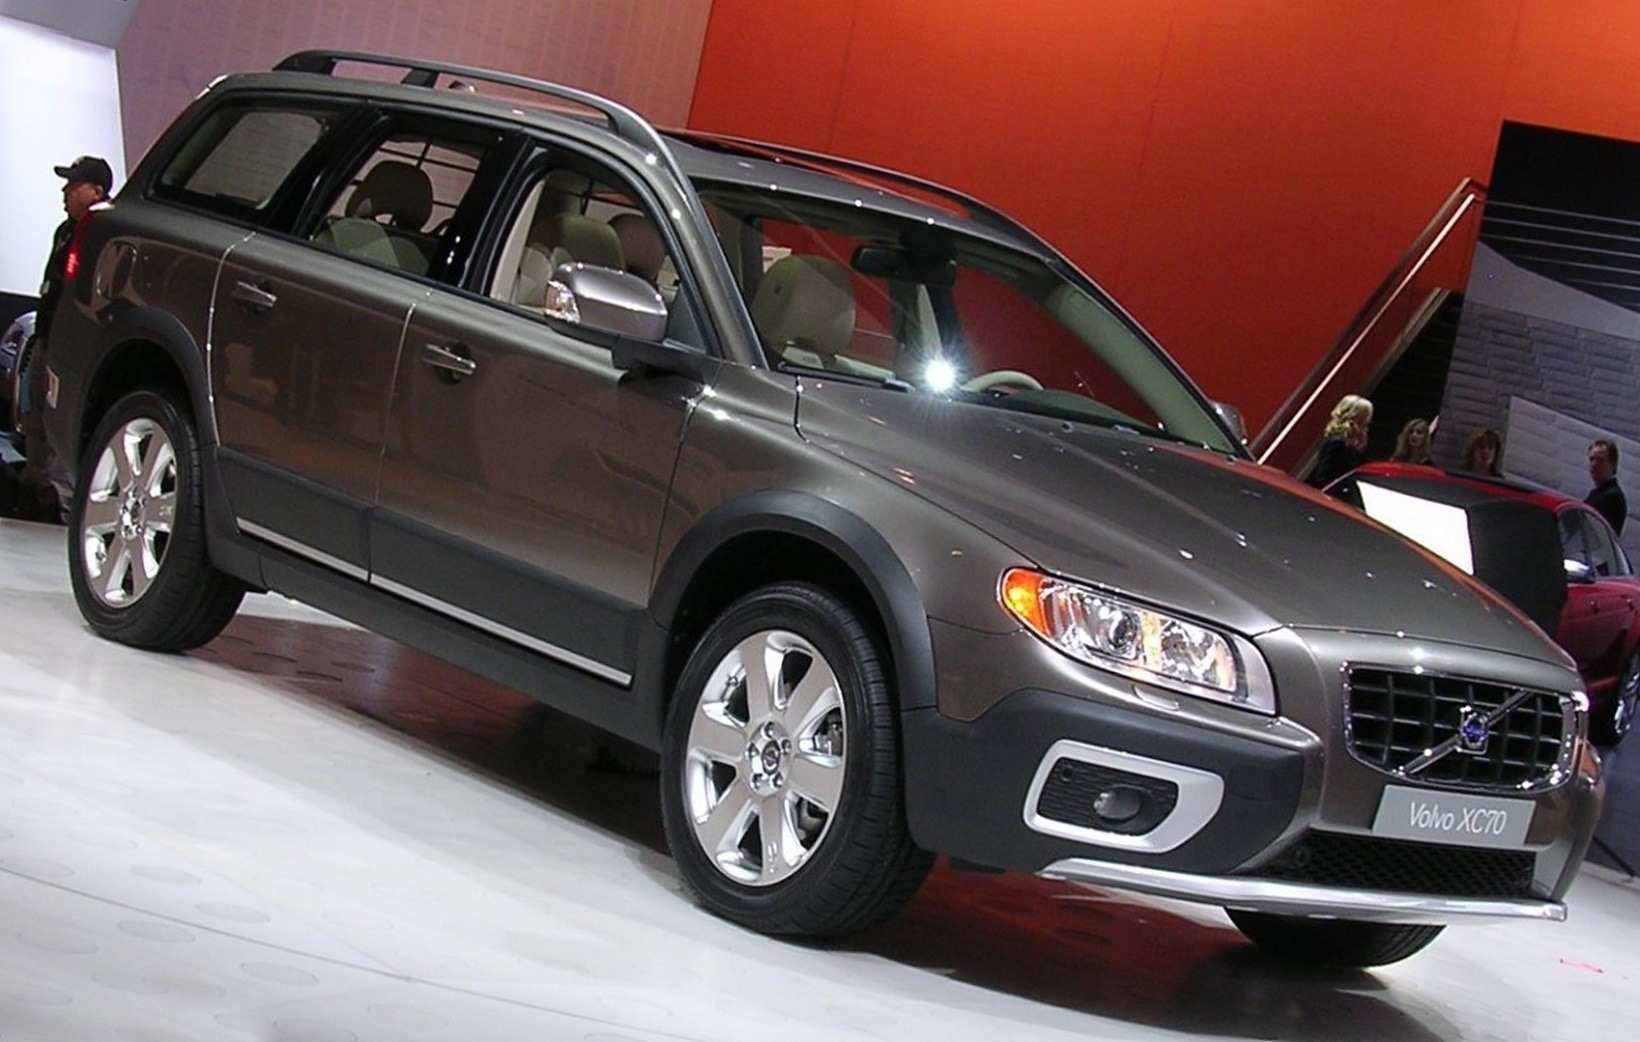 71 All New 2019 All Volvo Xc70 Price And Review